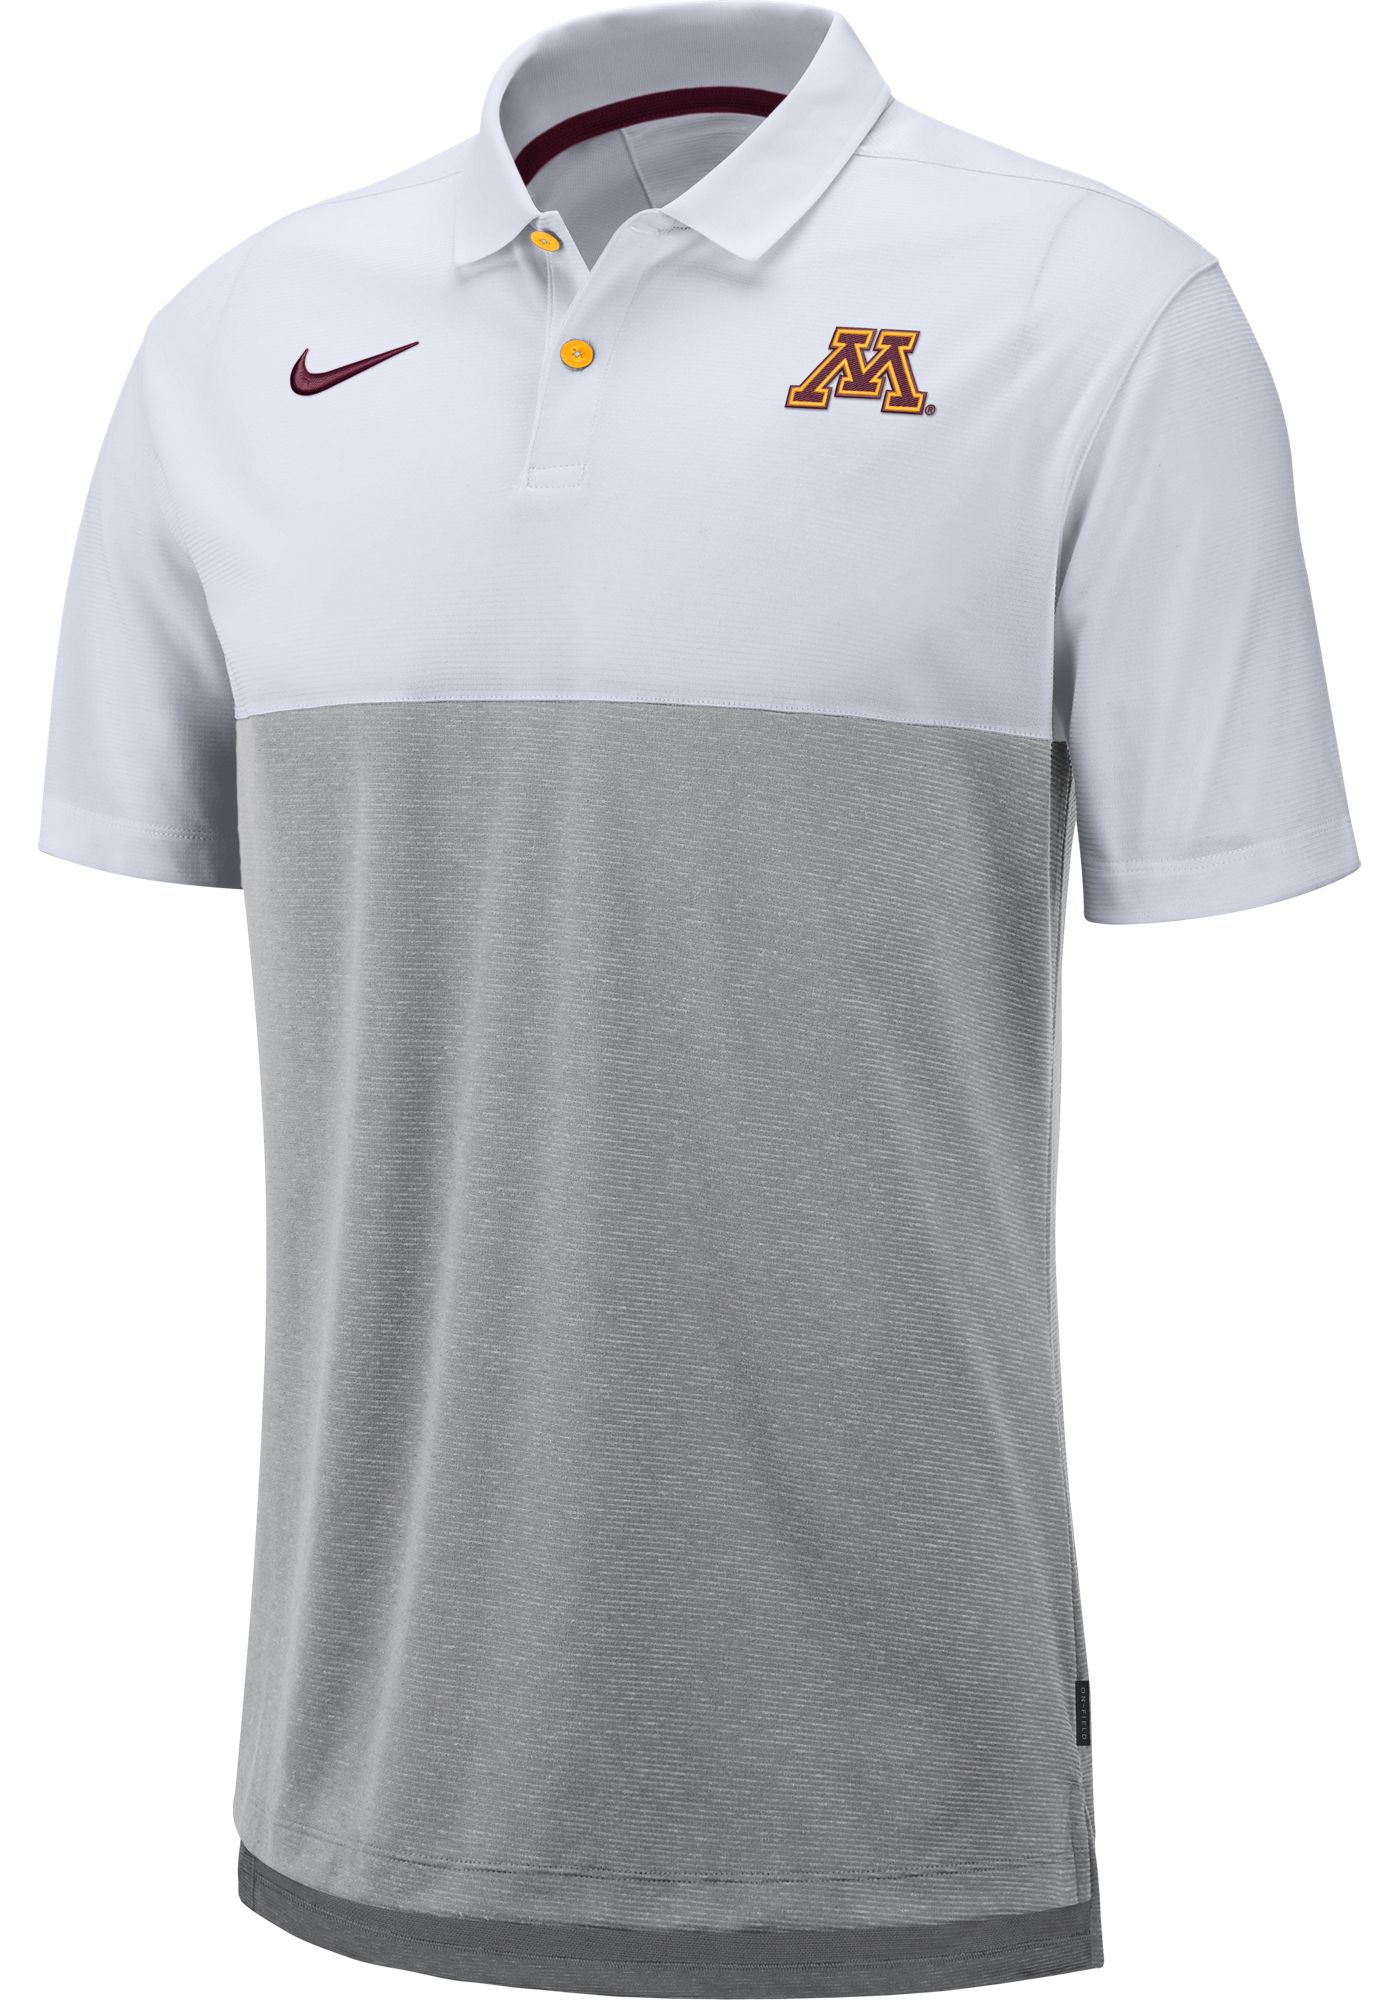 Nike Men's Minnesota Golden Gophers White/Grey Dri-FIT Breathe Football Sideline Polo